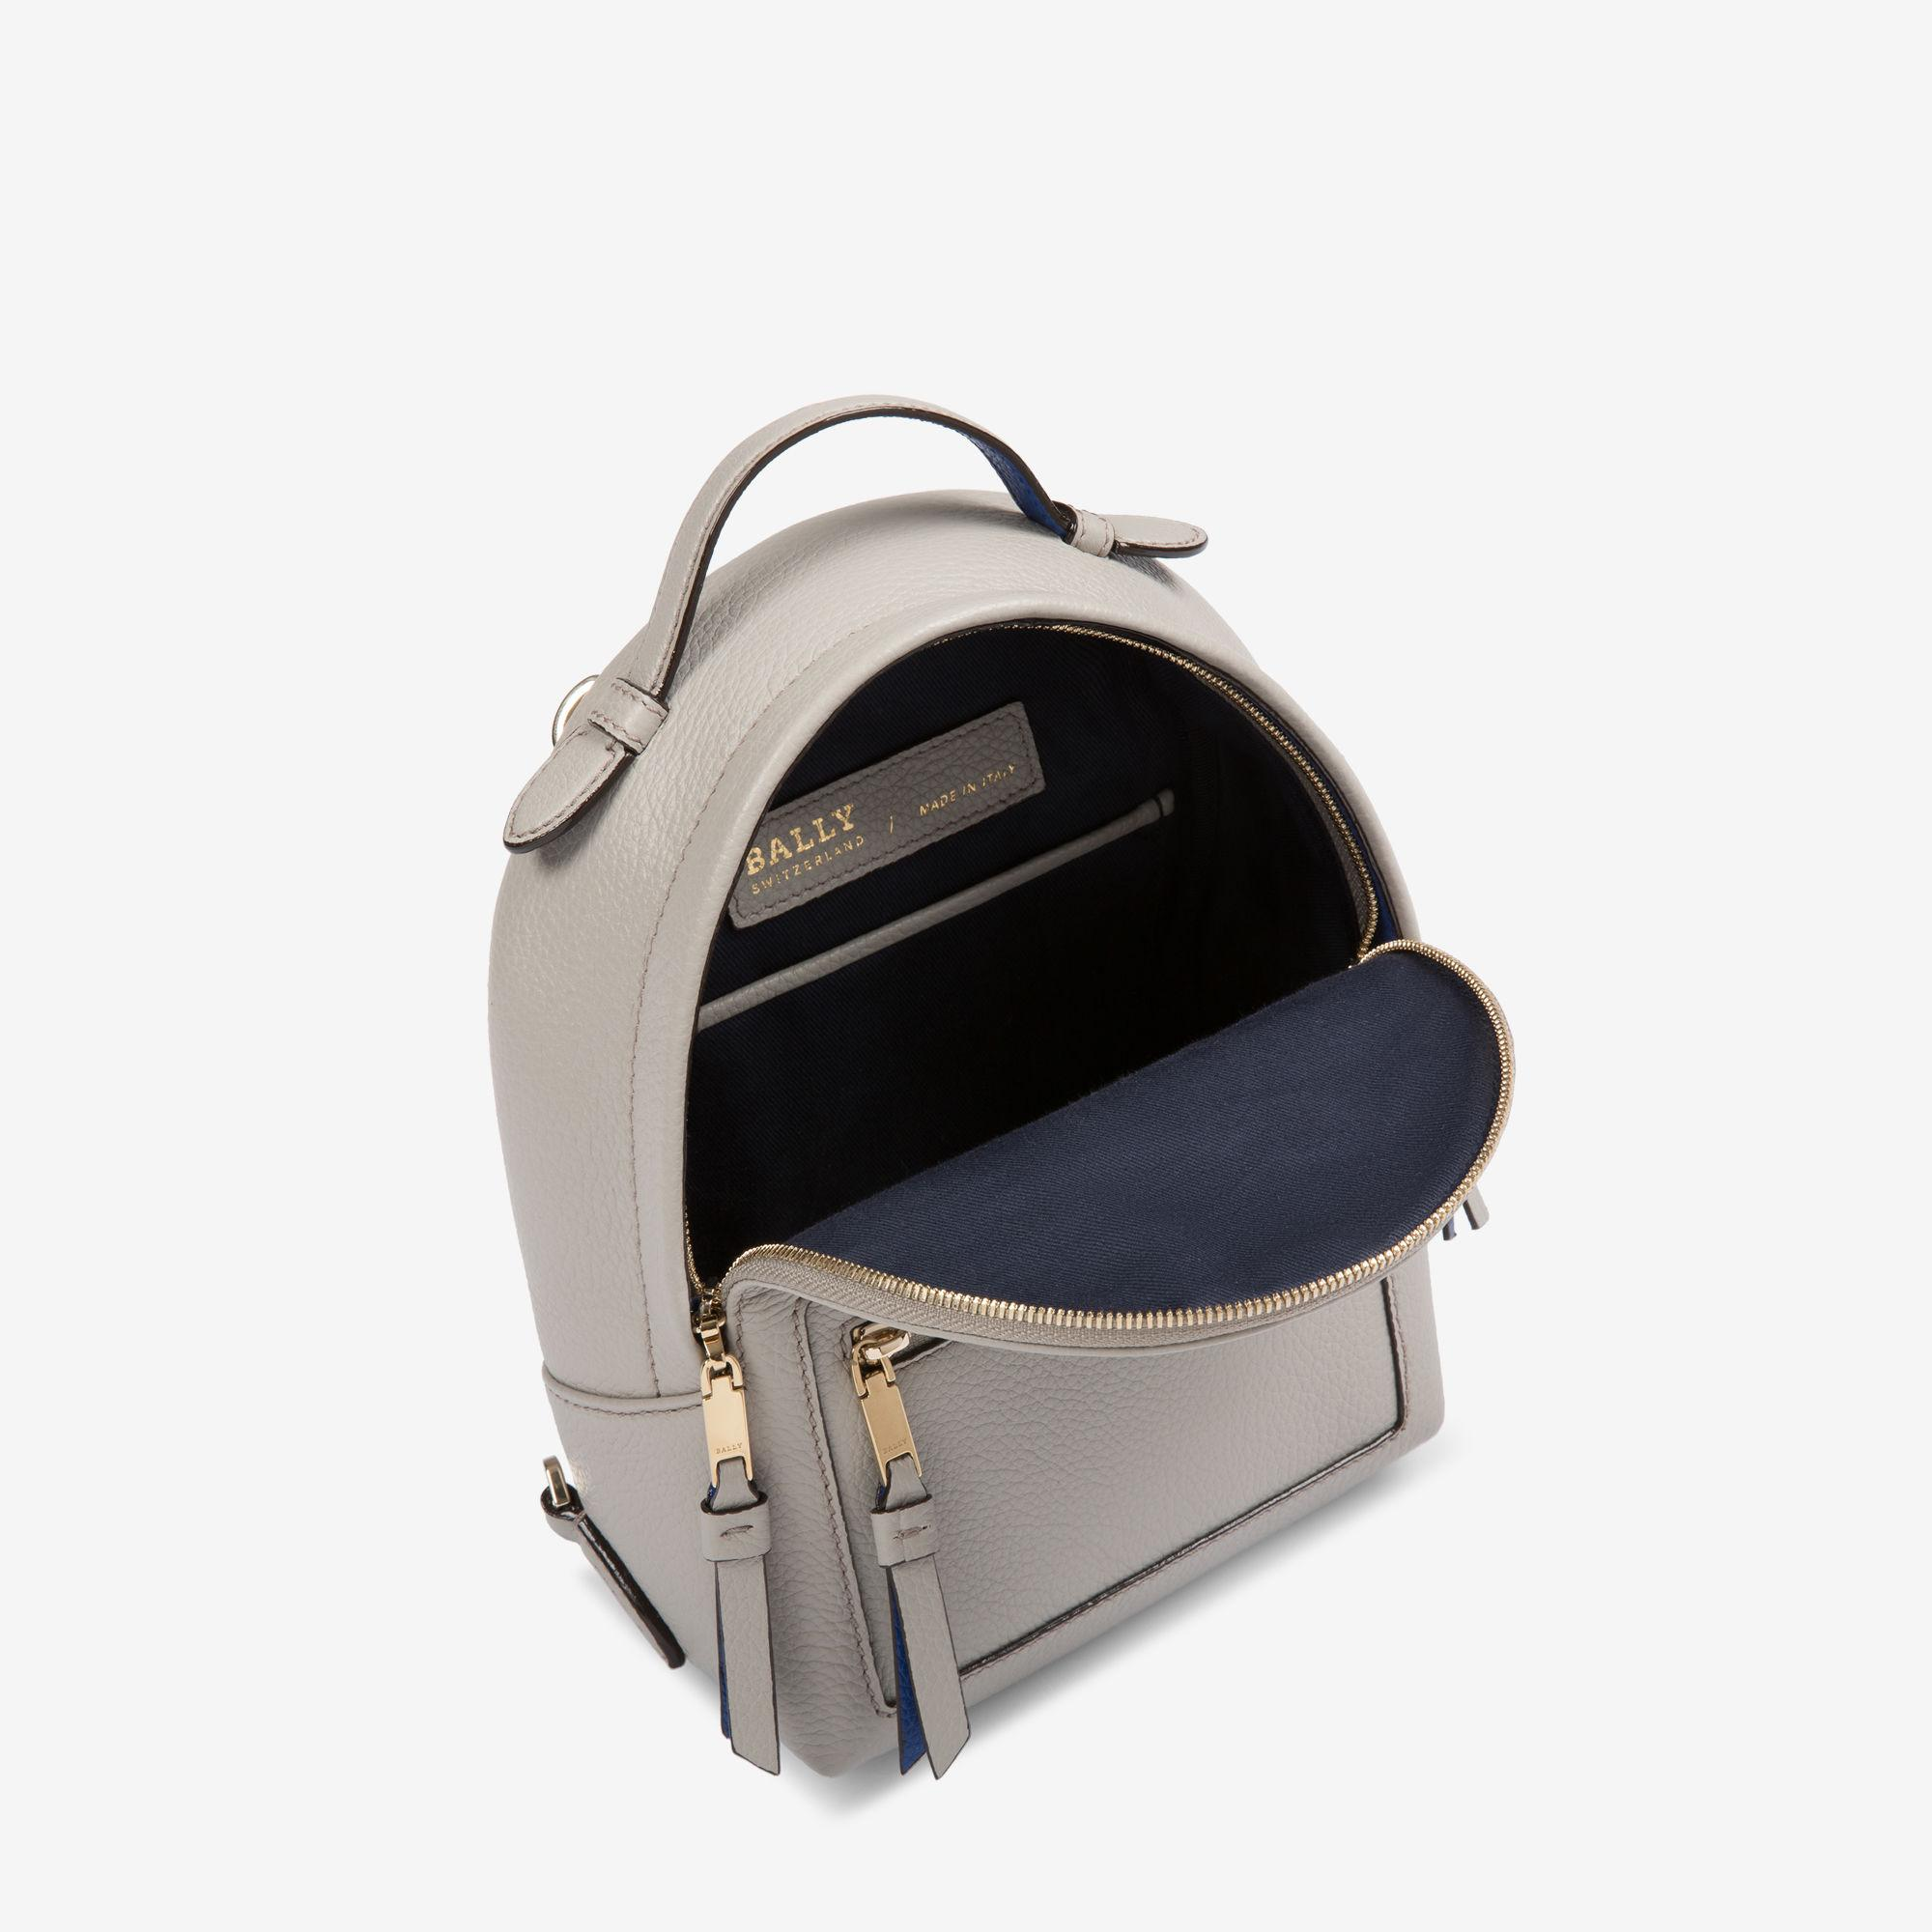 b4a908b3f4 Bally The Backpack Extra Small in Gray - Lyst